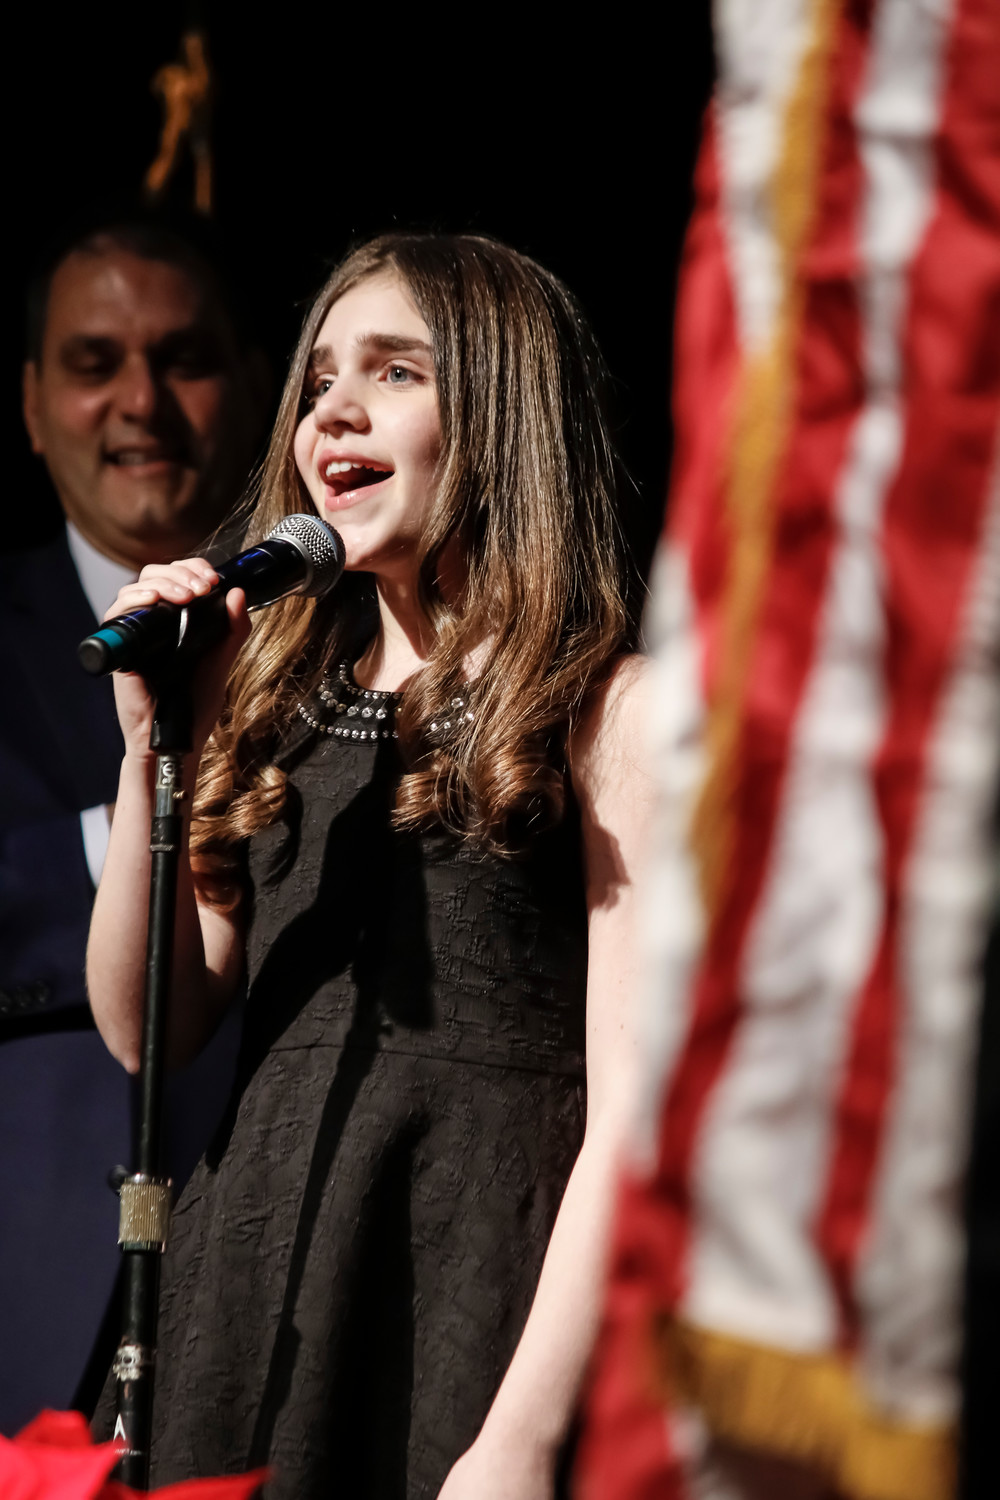 Amanda Swickle gave a stunning performance of the national anthem.